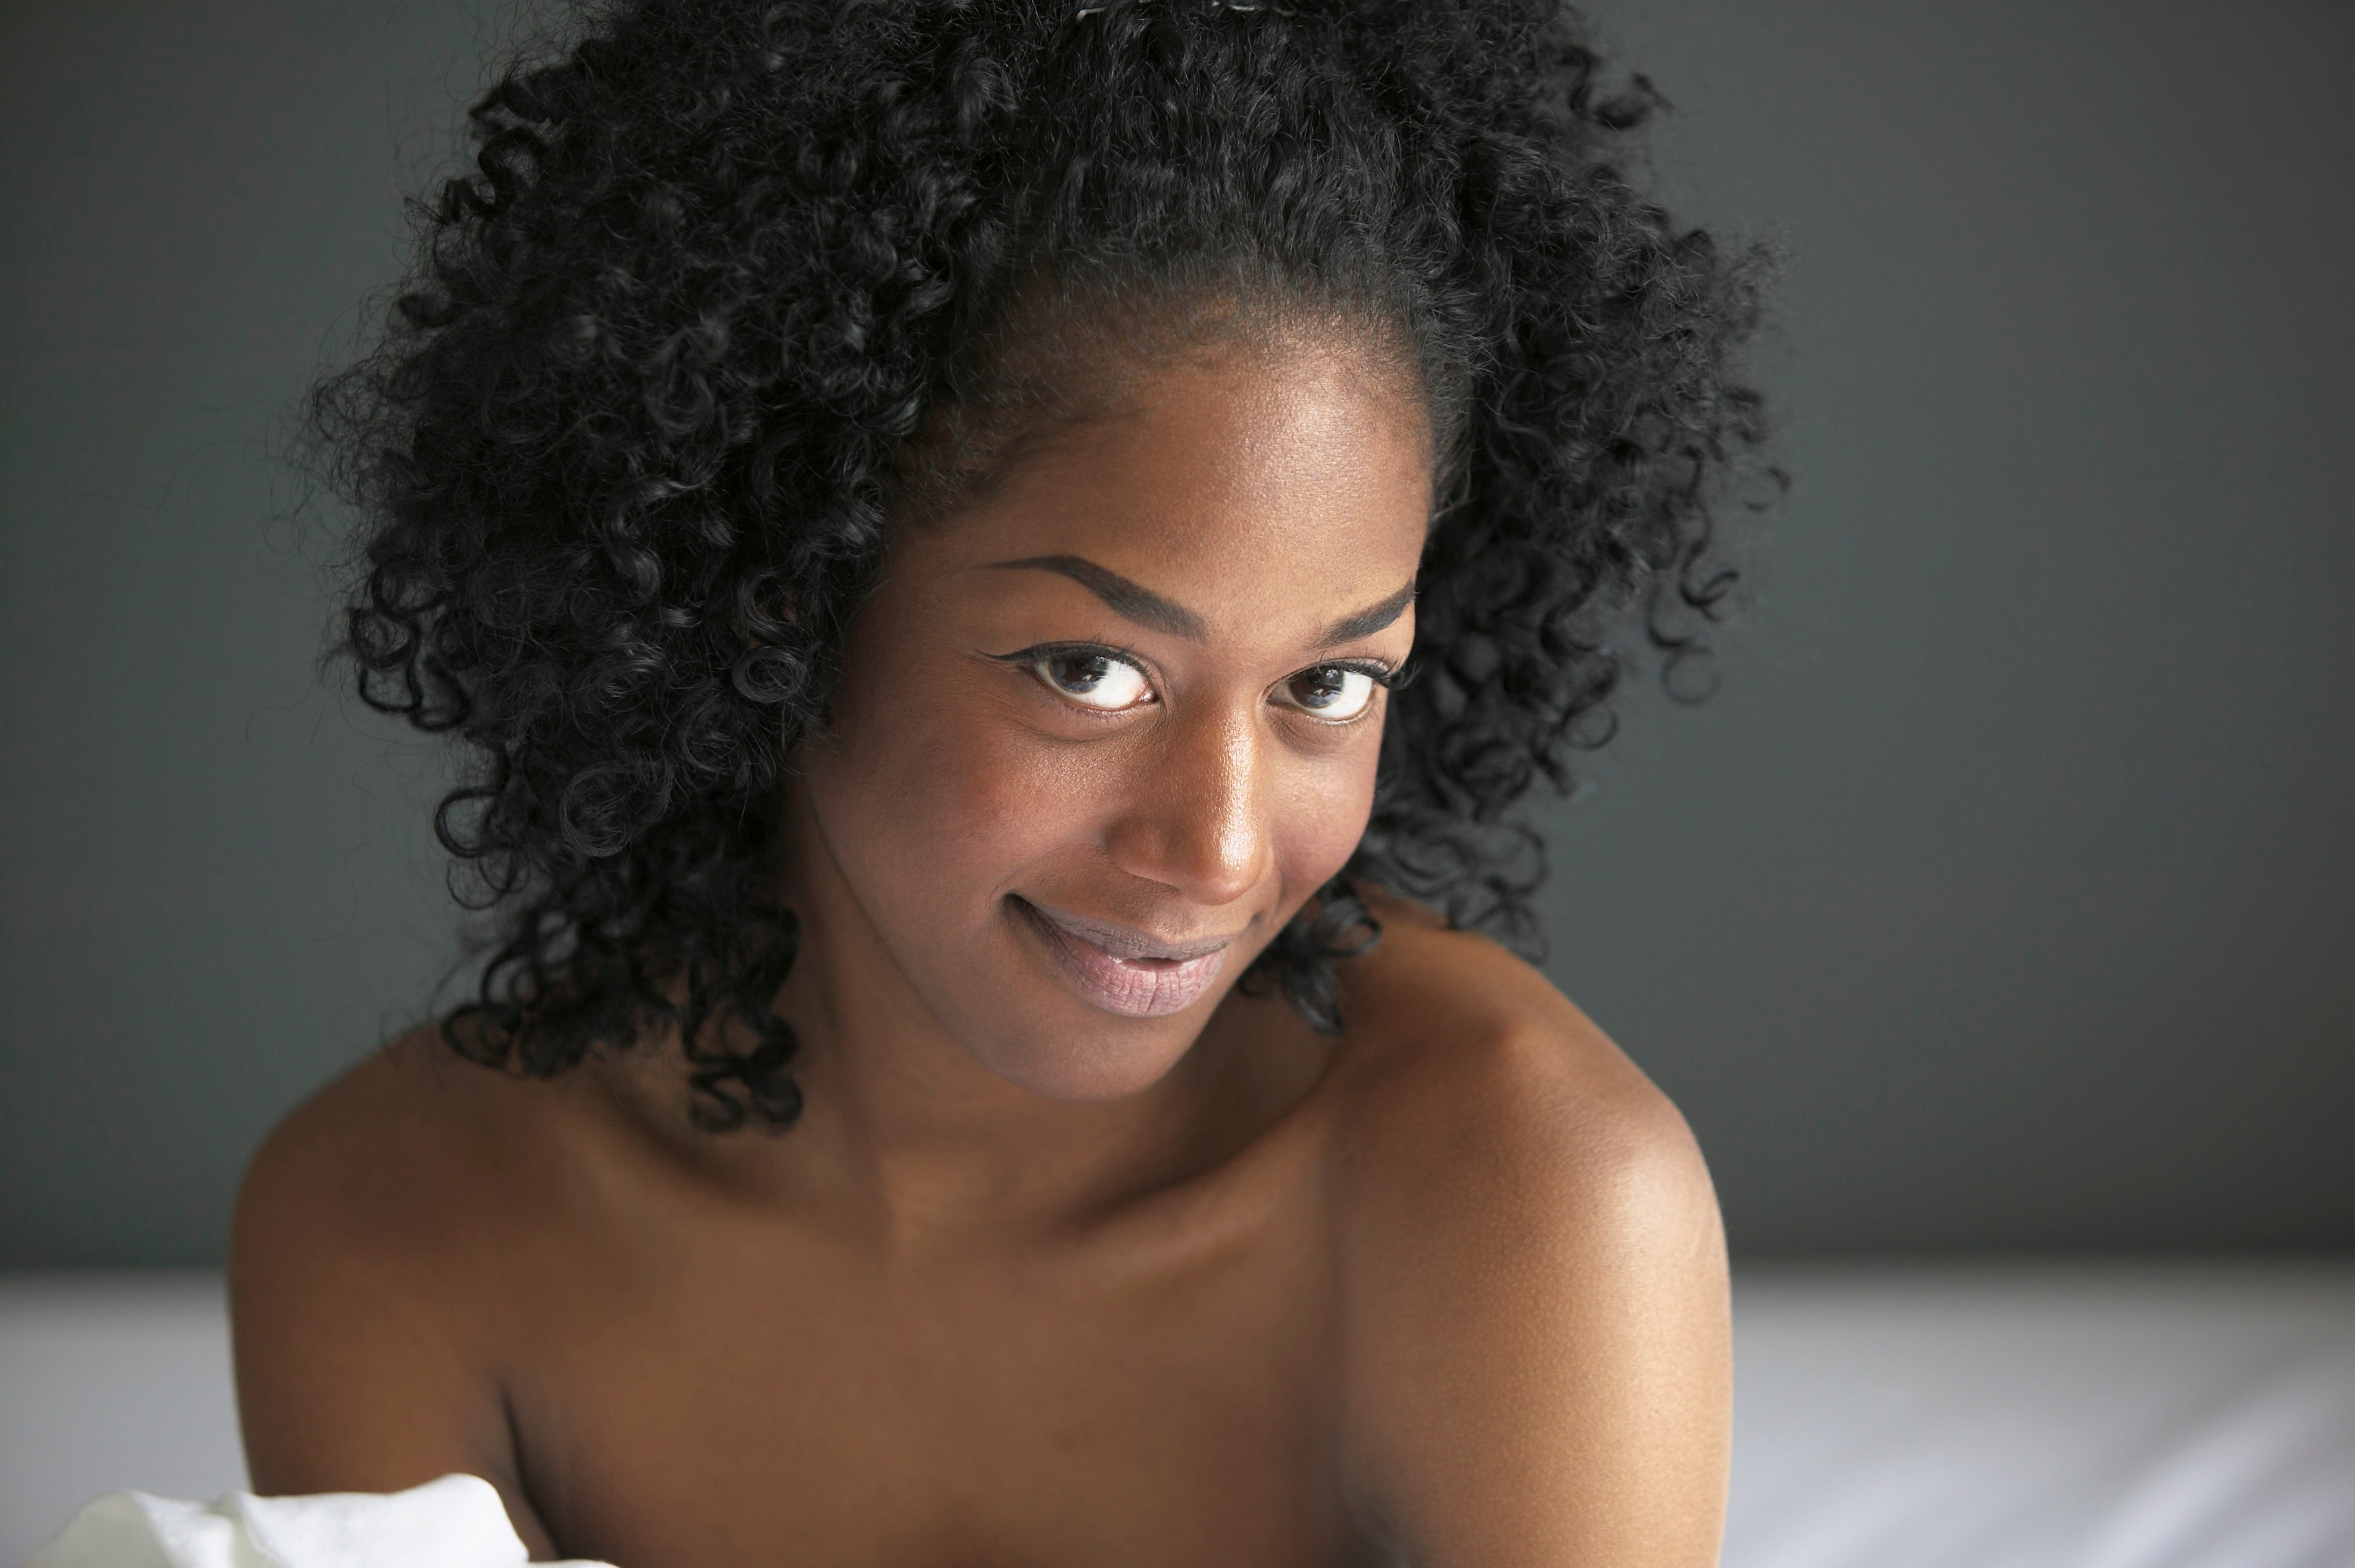 Essence Poll Do The Recent Celebrity Photo Leaks Make You Rethink Taking Nude Photos